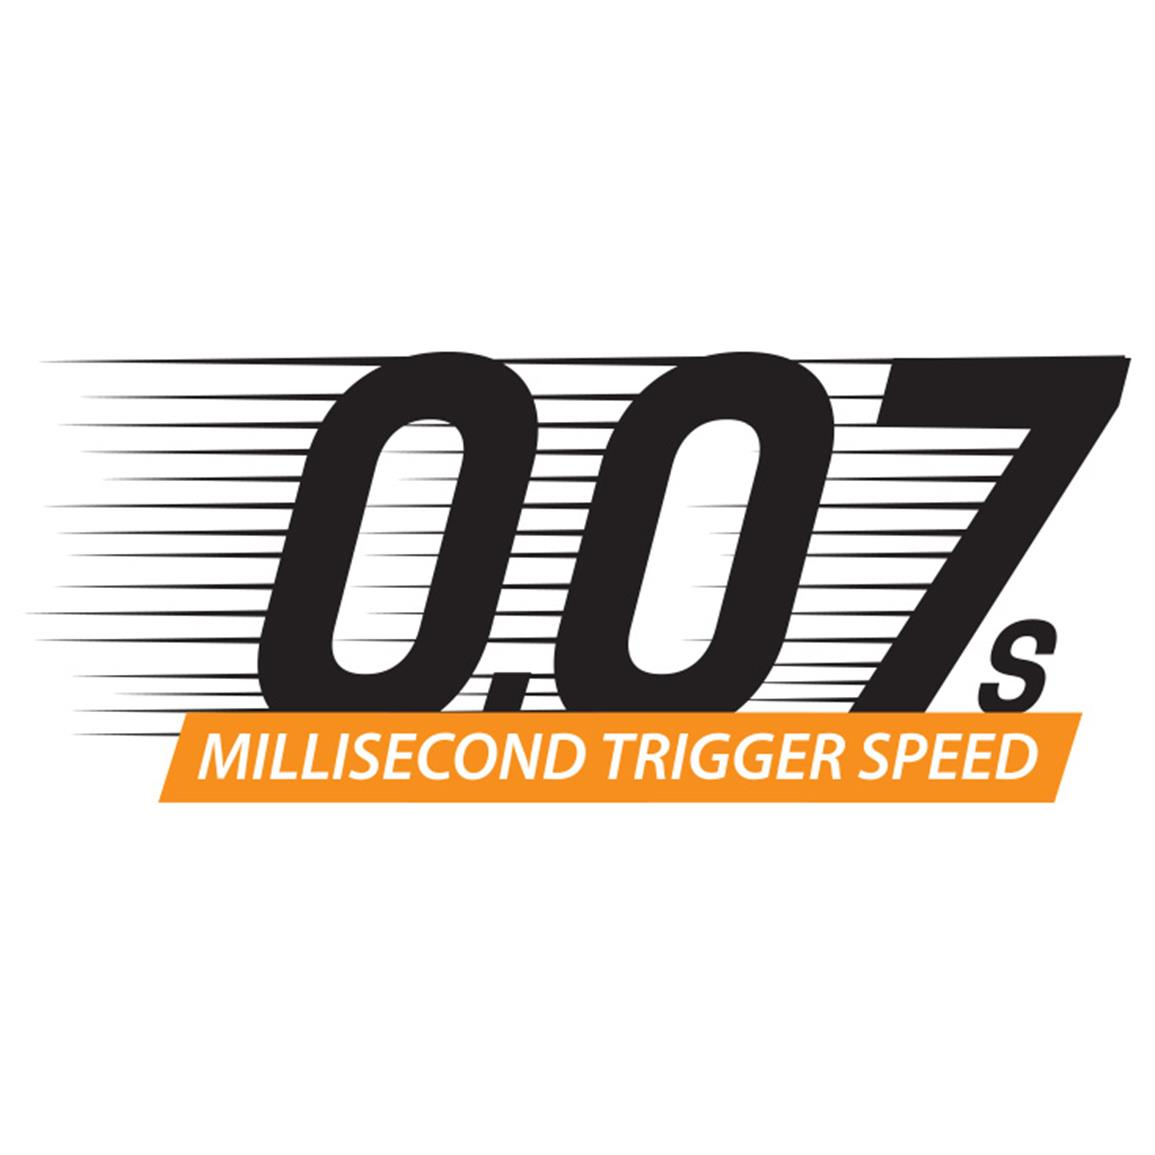 0.07 millisecond trigger speed